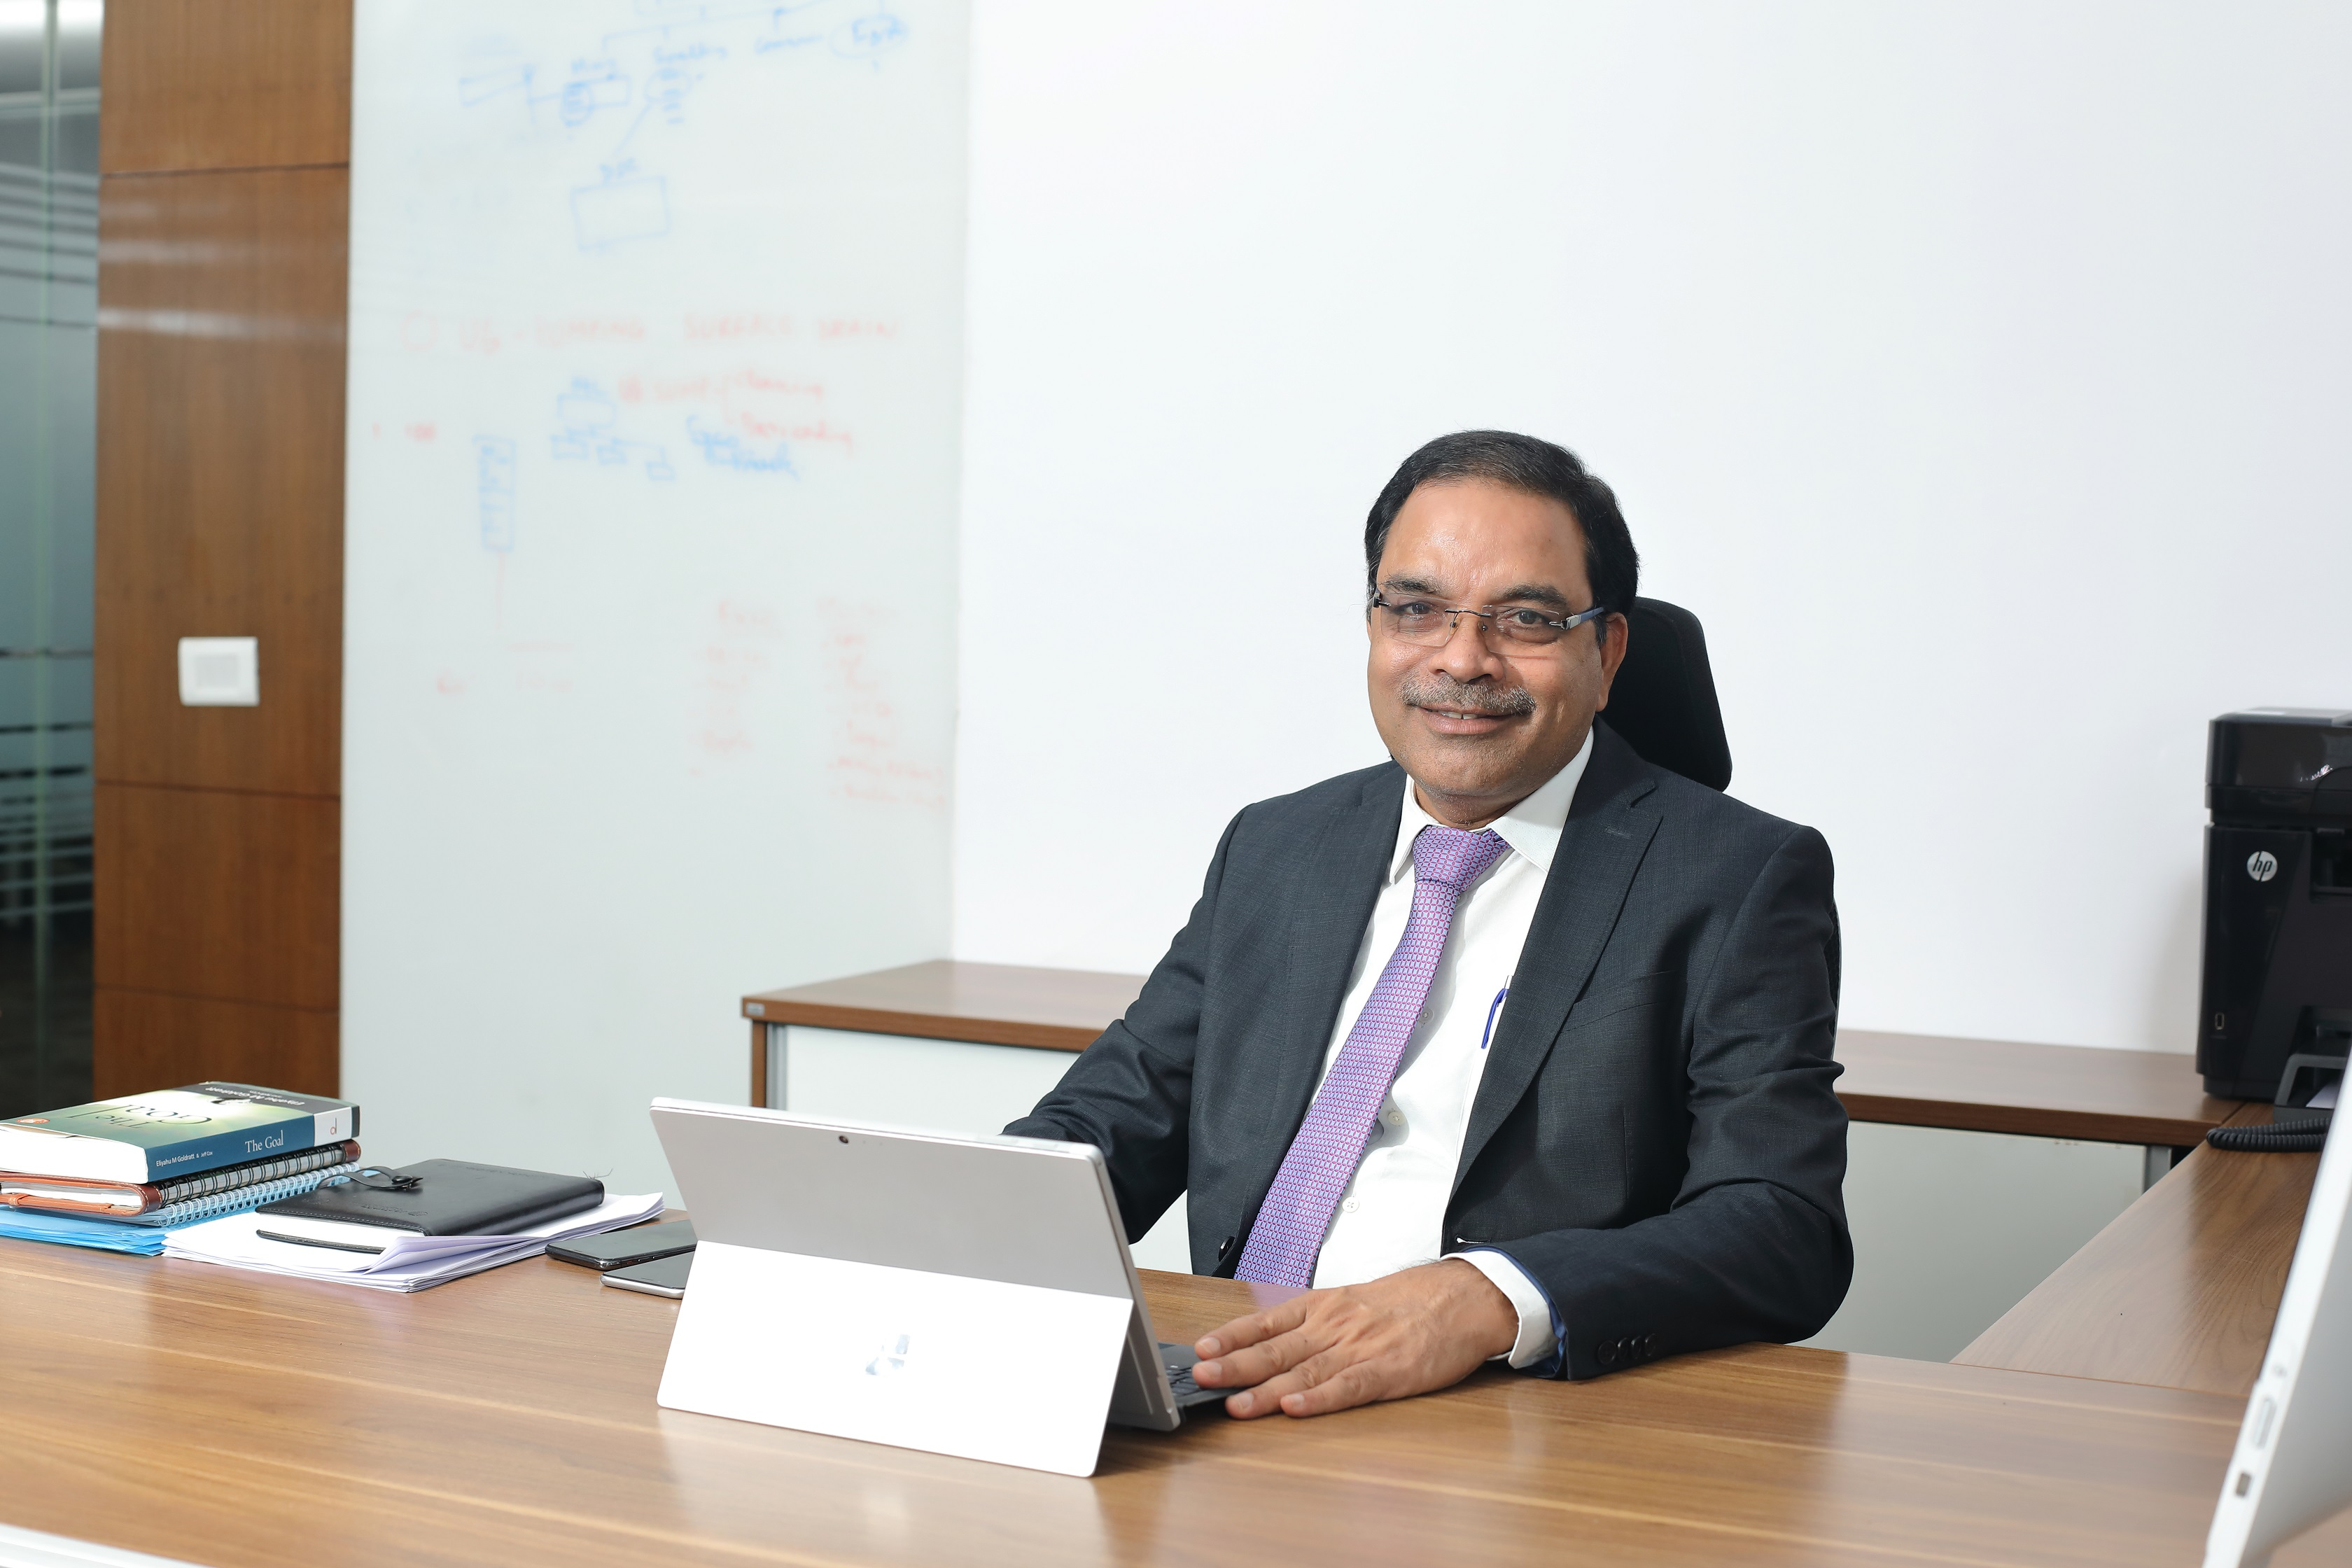 Arun Misra wins CEO of the Year award